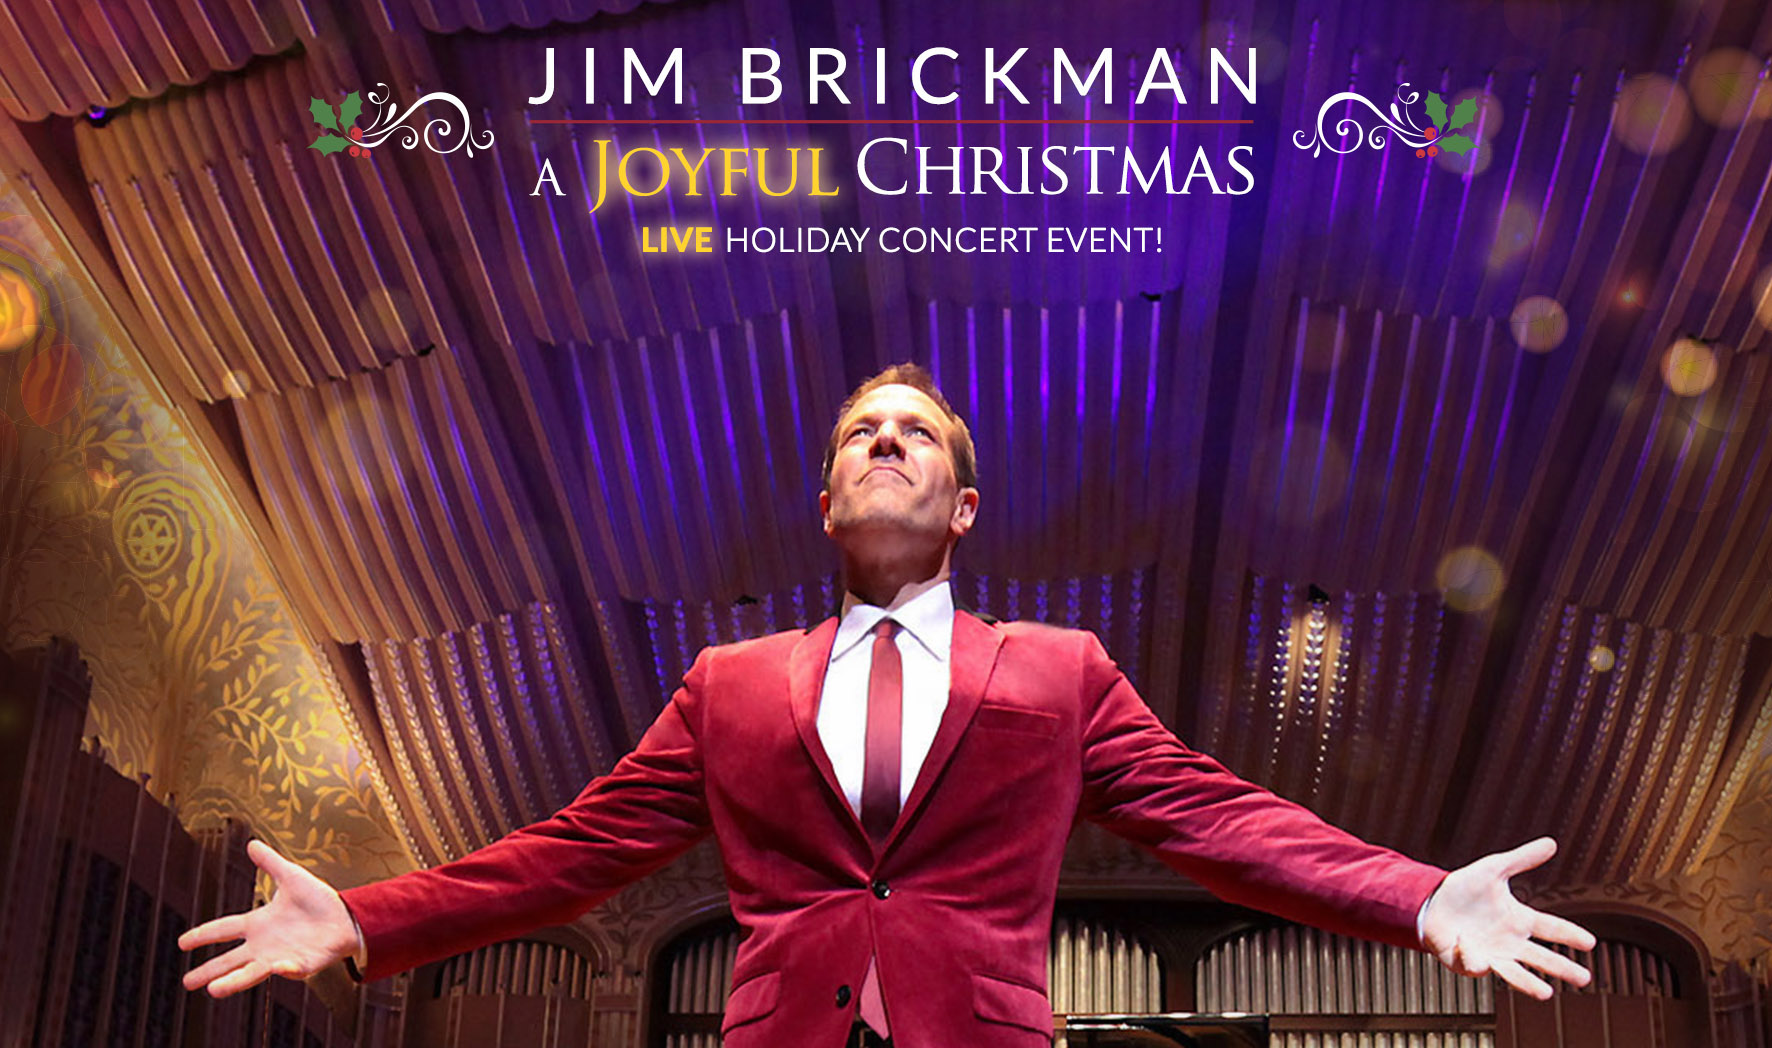 Jim Brickman - A Joyful Christmas Live Holiday Concert @ Tower Theatre | Bend | Oregon | United States